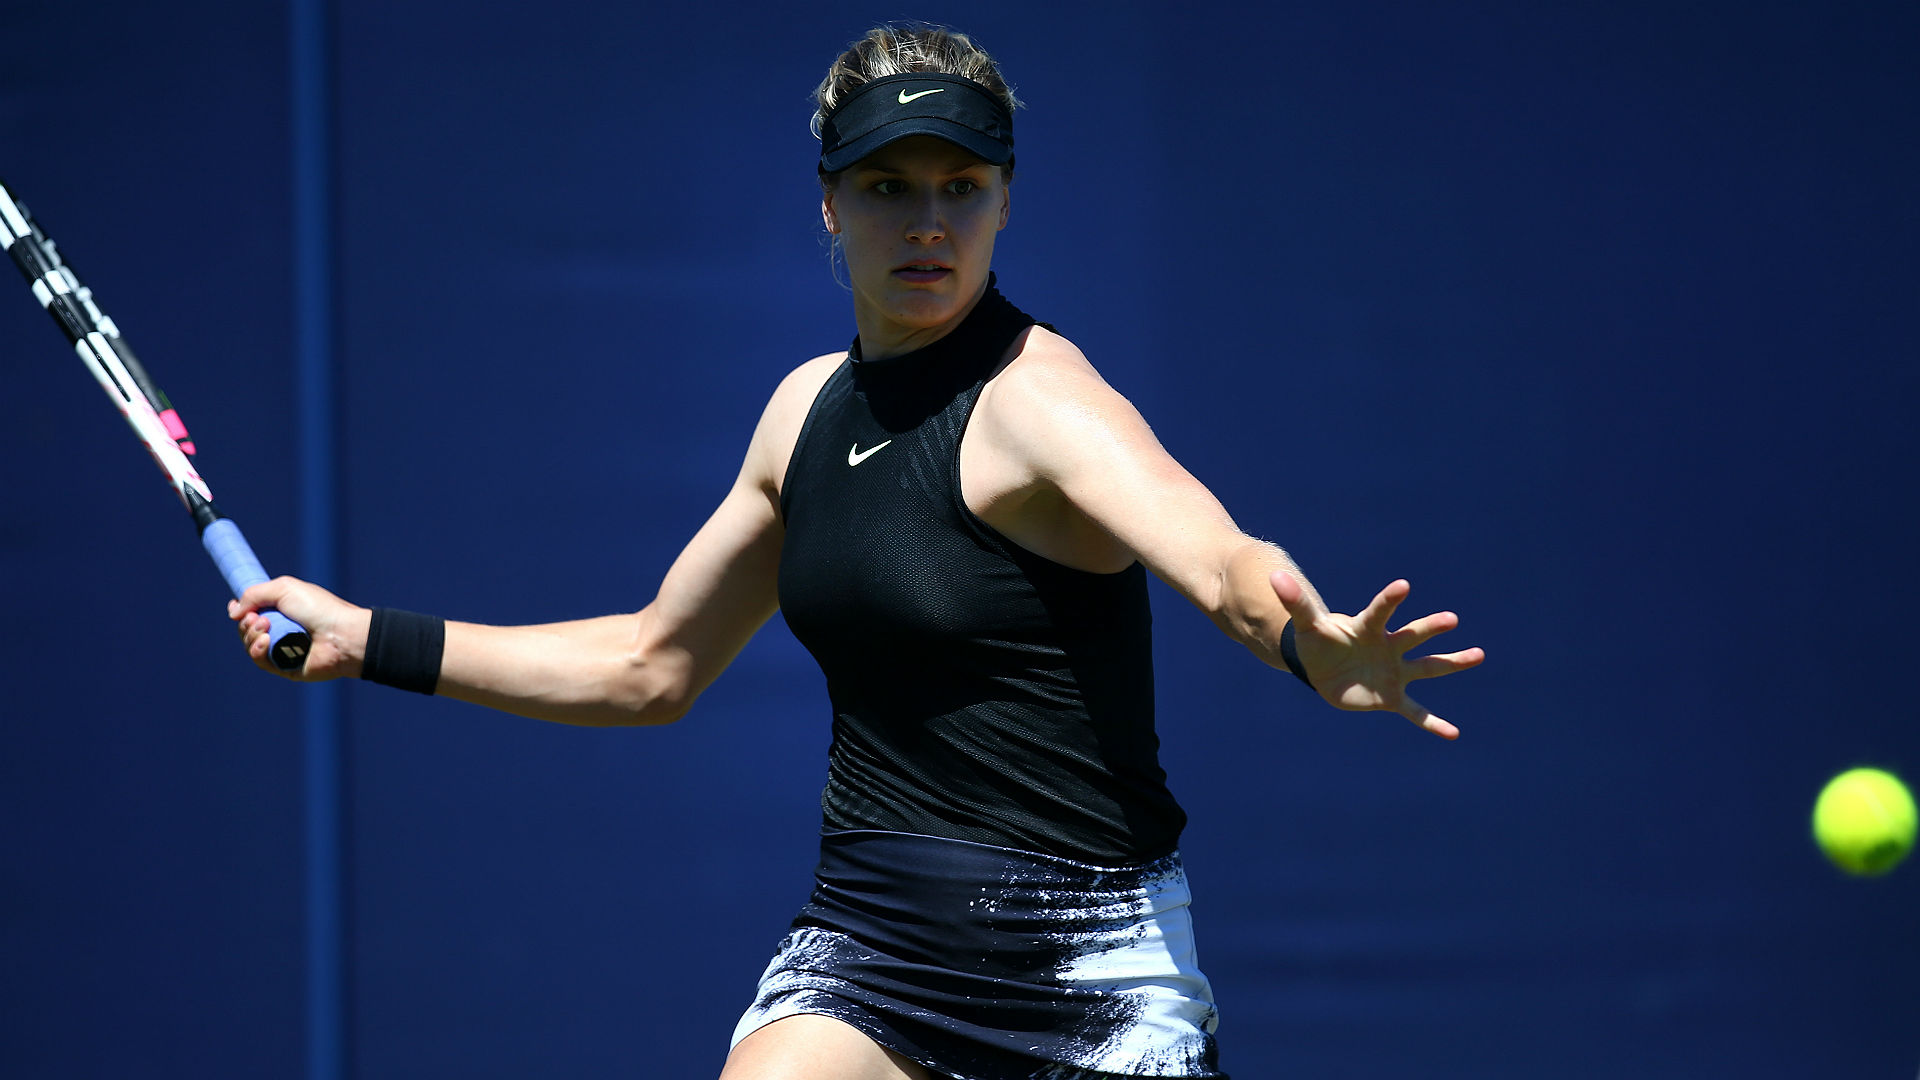 Bouchard ousted in first round of Rogers Cup